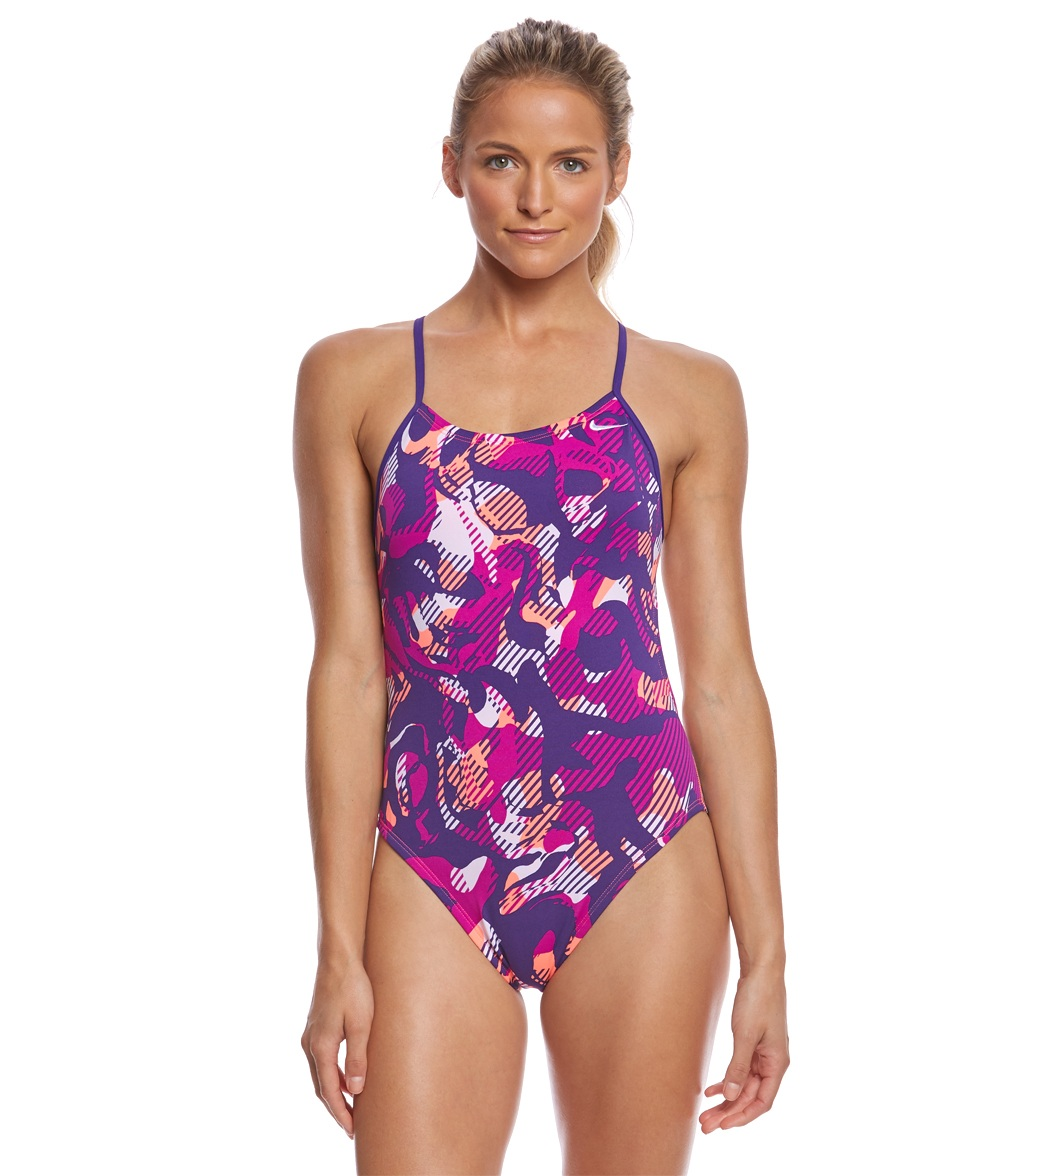 7851b92383 Nike Women s Floral Camo Cut-Out Tank One Piece Swimsuit at SwimOutlet.com  - Free Shipping